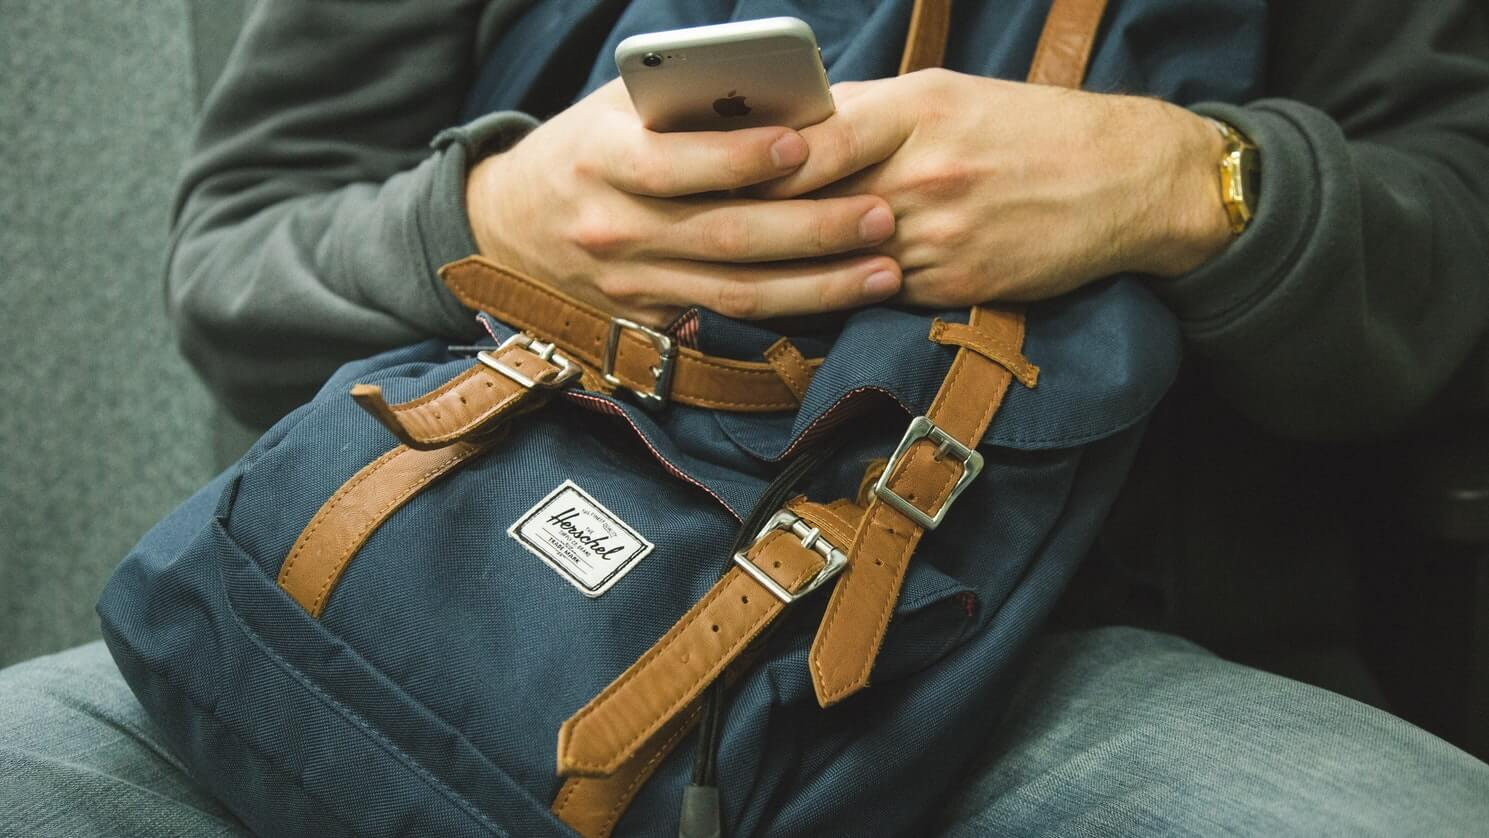 man using phone with backpack